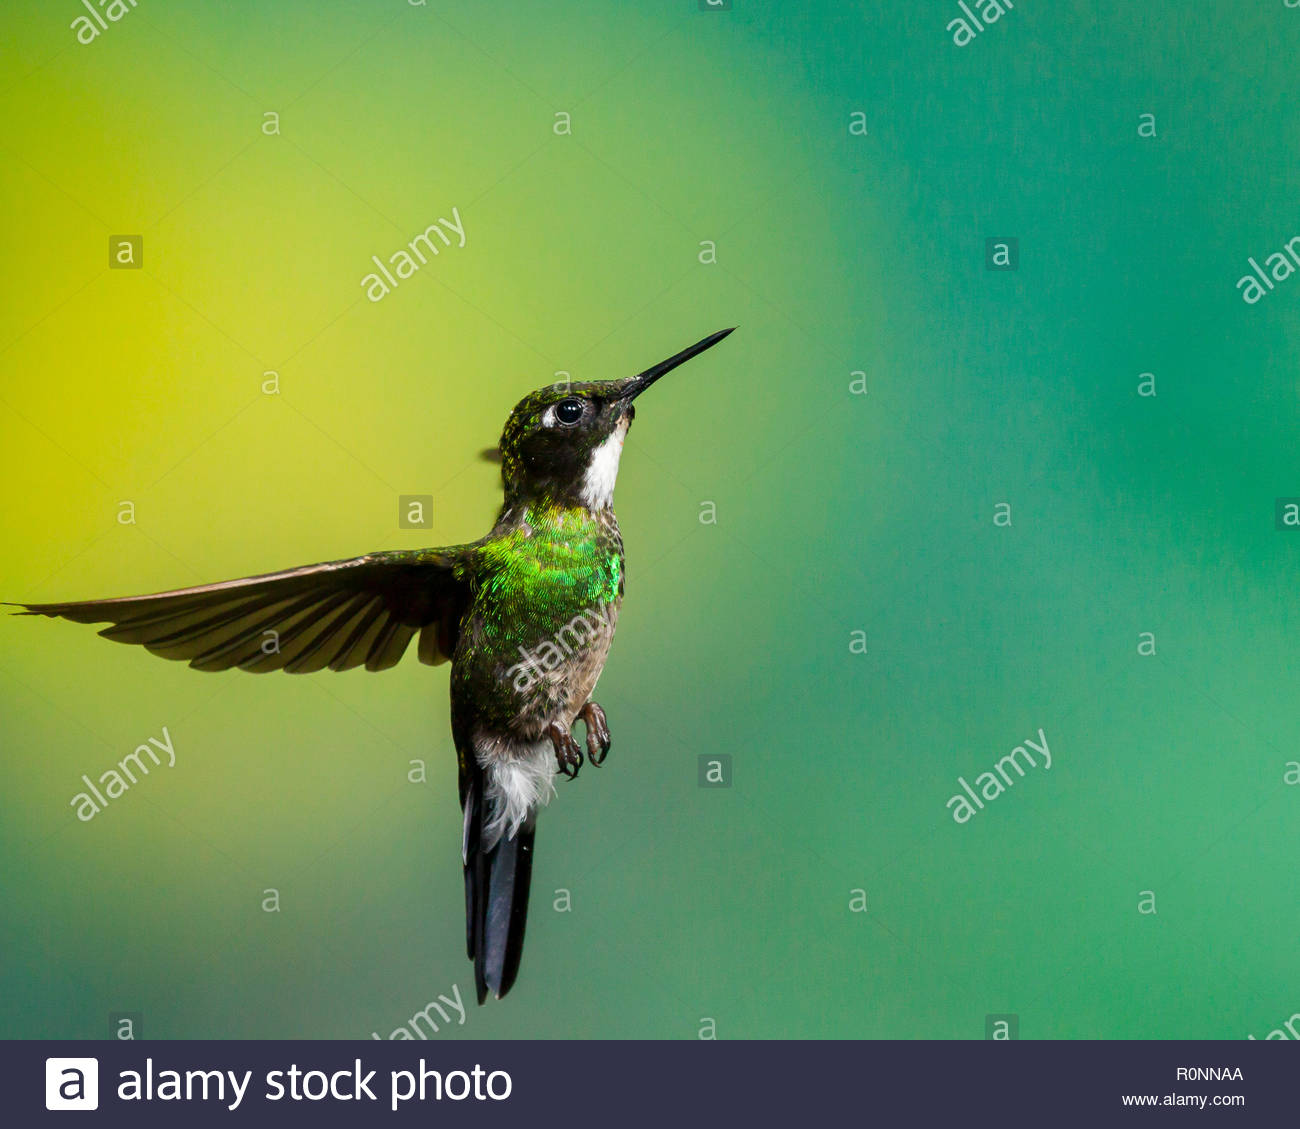 Tourmaline sunangel caught with wings fully swept back in this stop action. - Stock Image